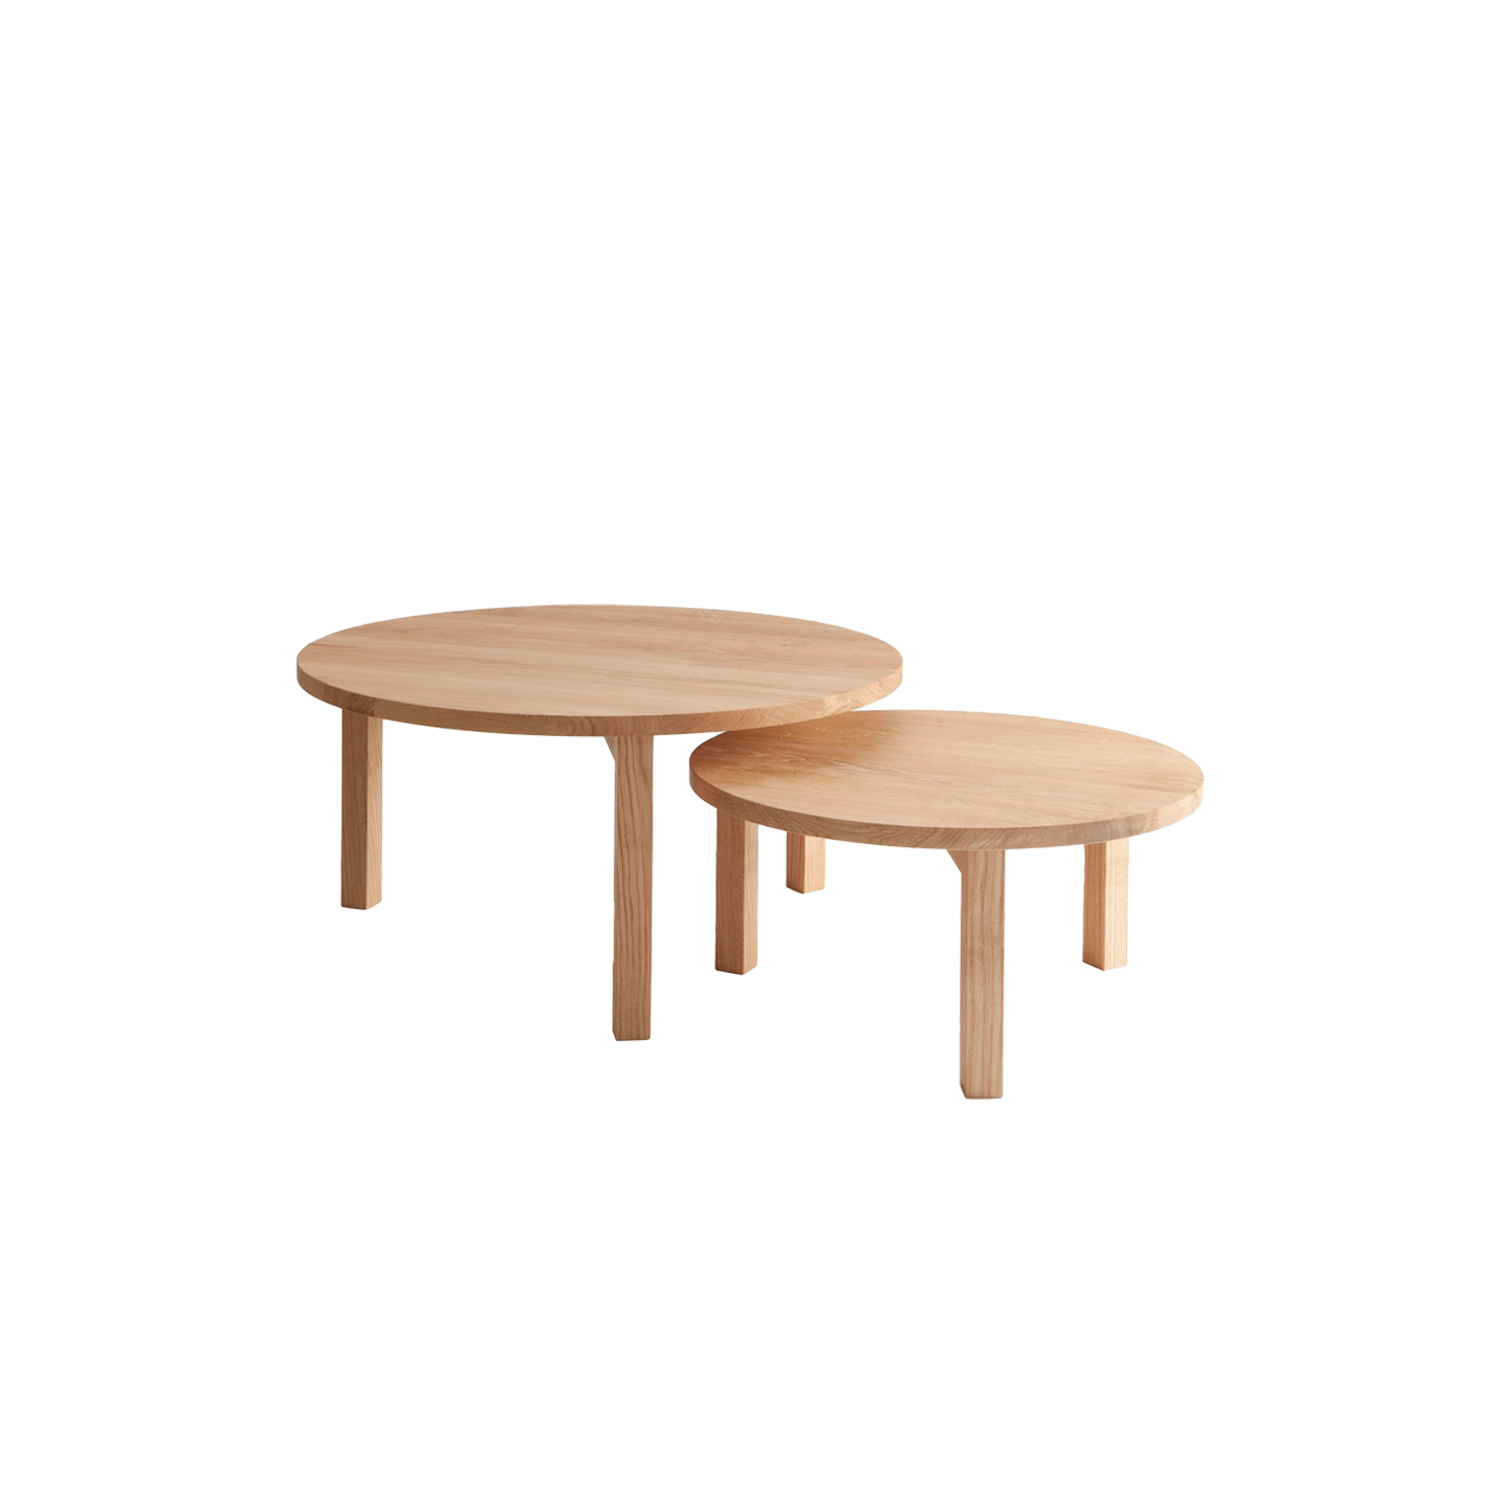 Periferia Coffee Table - Two heights and unique surfaces of solid wood are the characteristics of this table. It can be used both in highly commercial surroundings, as well as private homes. Available in two sizes in birch, ash or oak with an oiled finish.   | Matter of Stuff